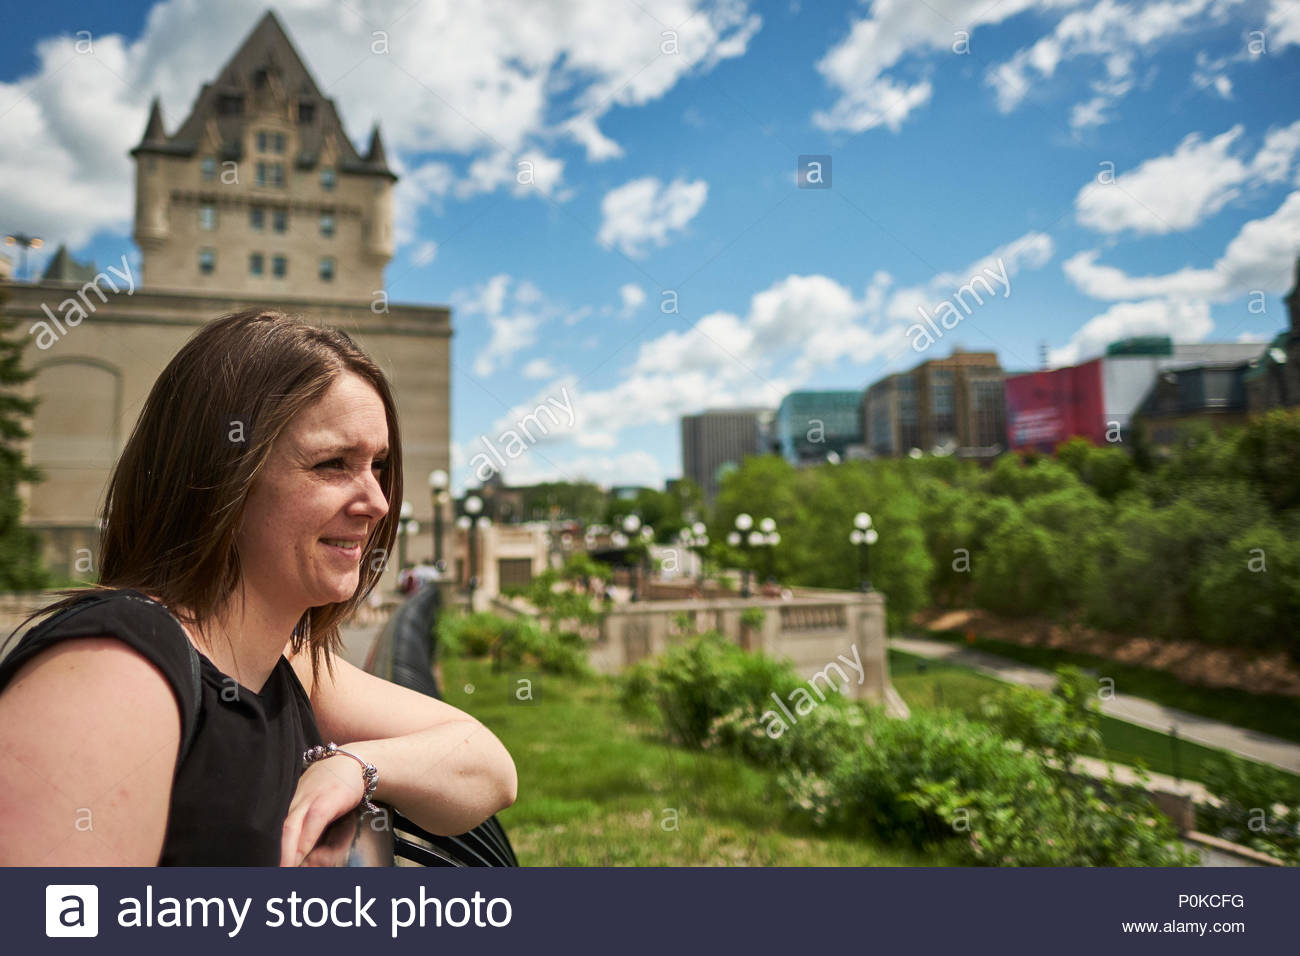 Tourist exploring city during spring season in Ottawa, Ontario, Canada 2017 - Stock Image